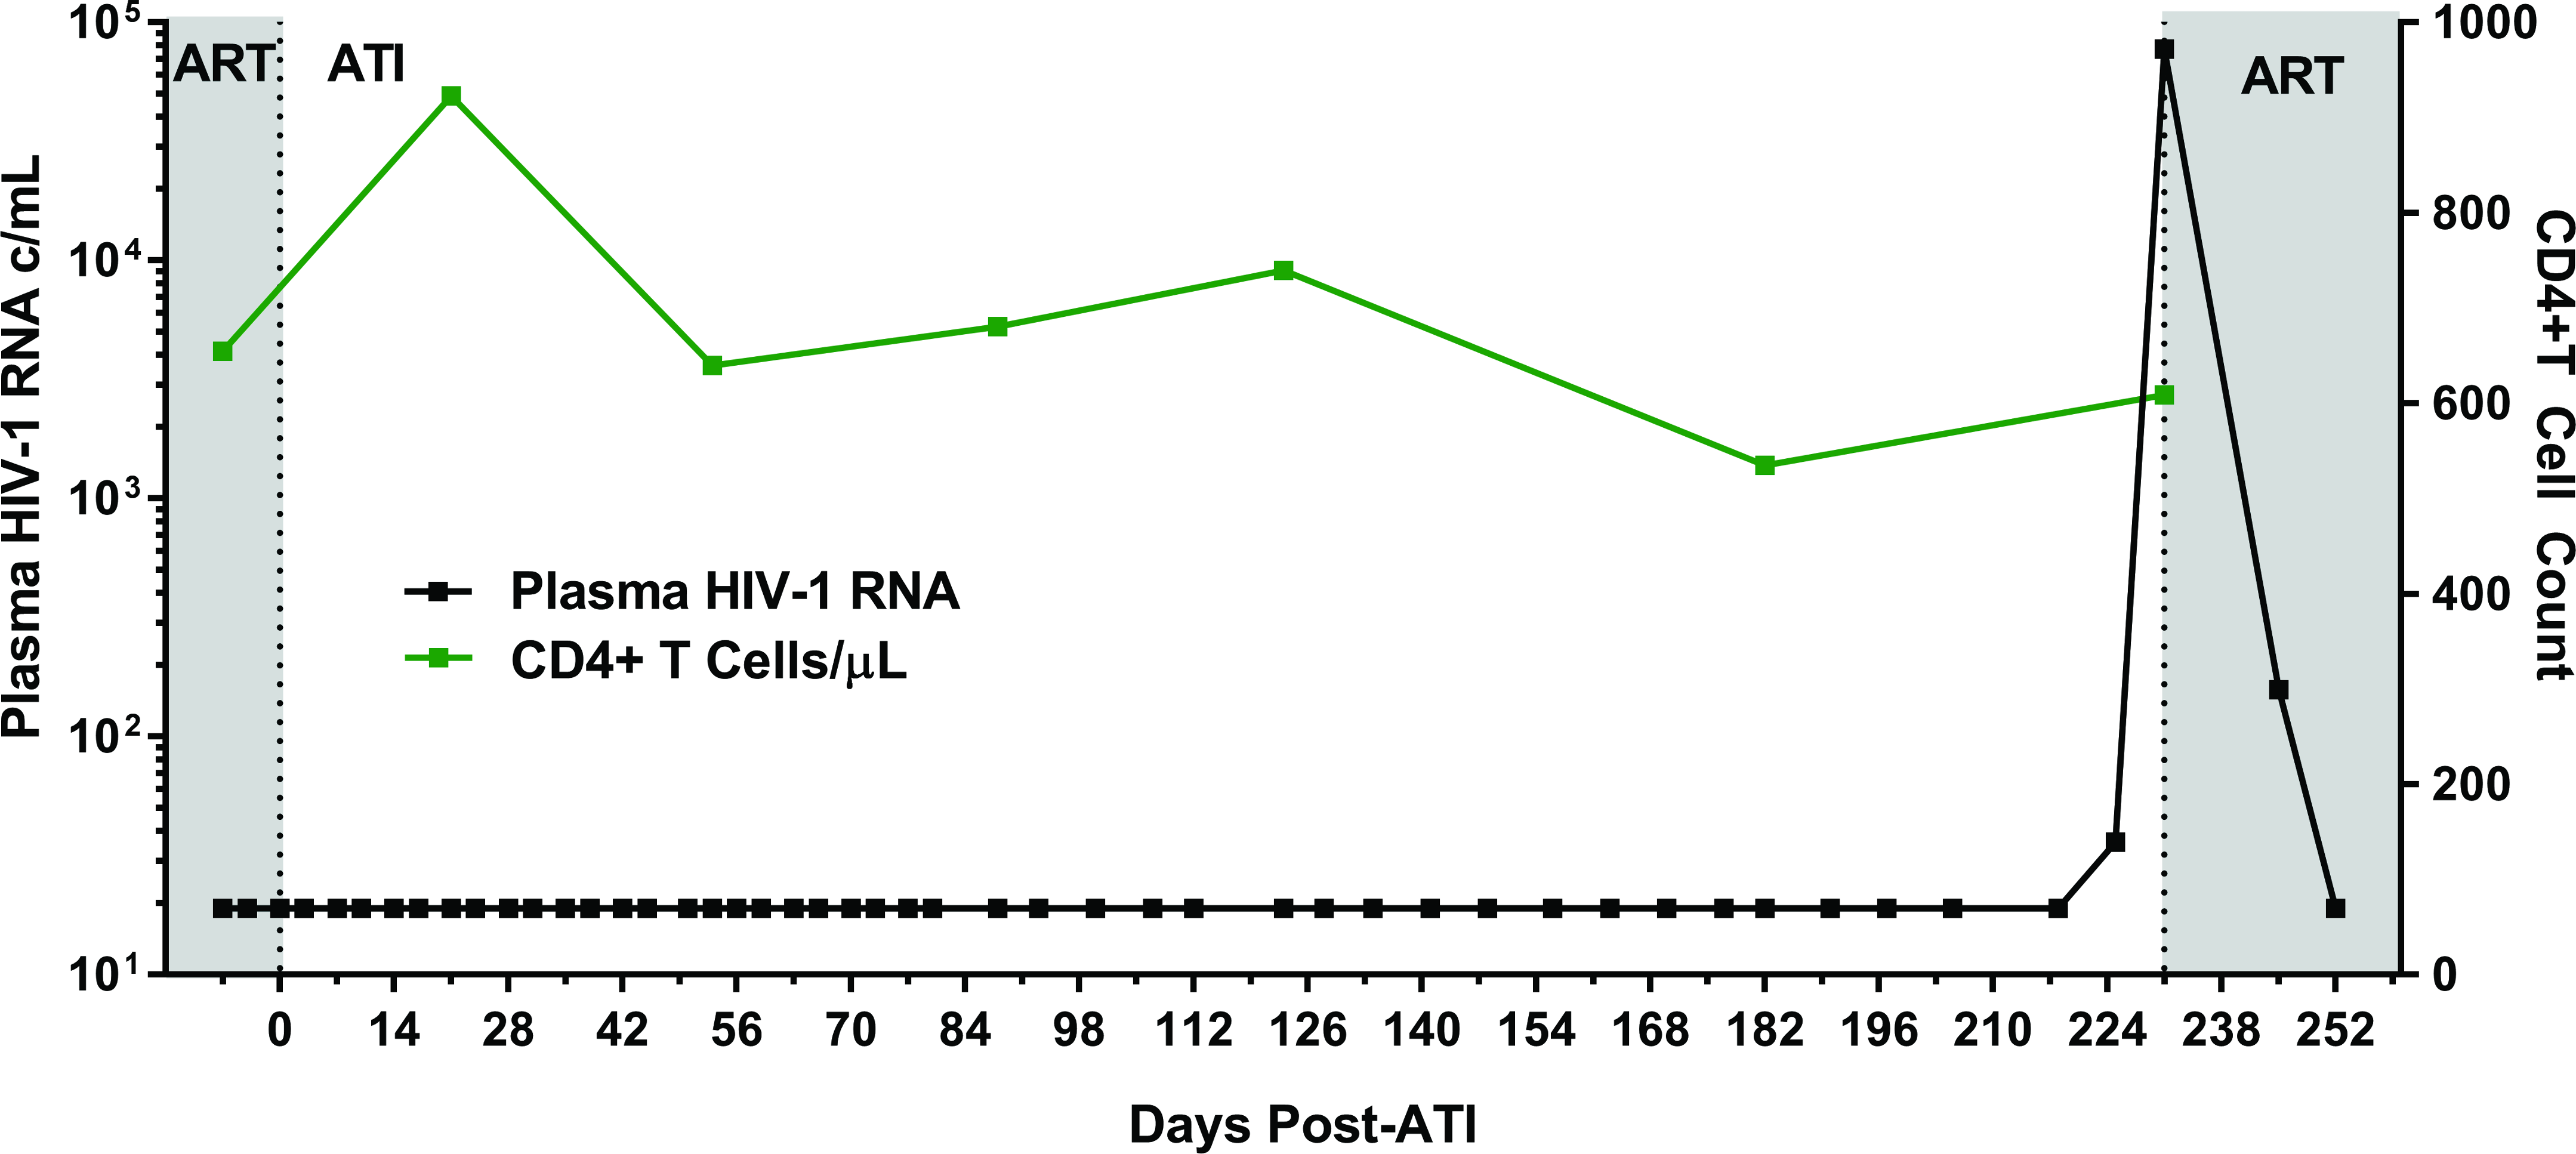 Summary timeline of plasma viral load and CD4+ T cell counts following analytical ART treatment interruption in Participant A.